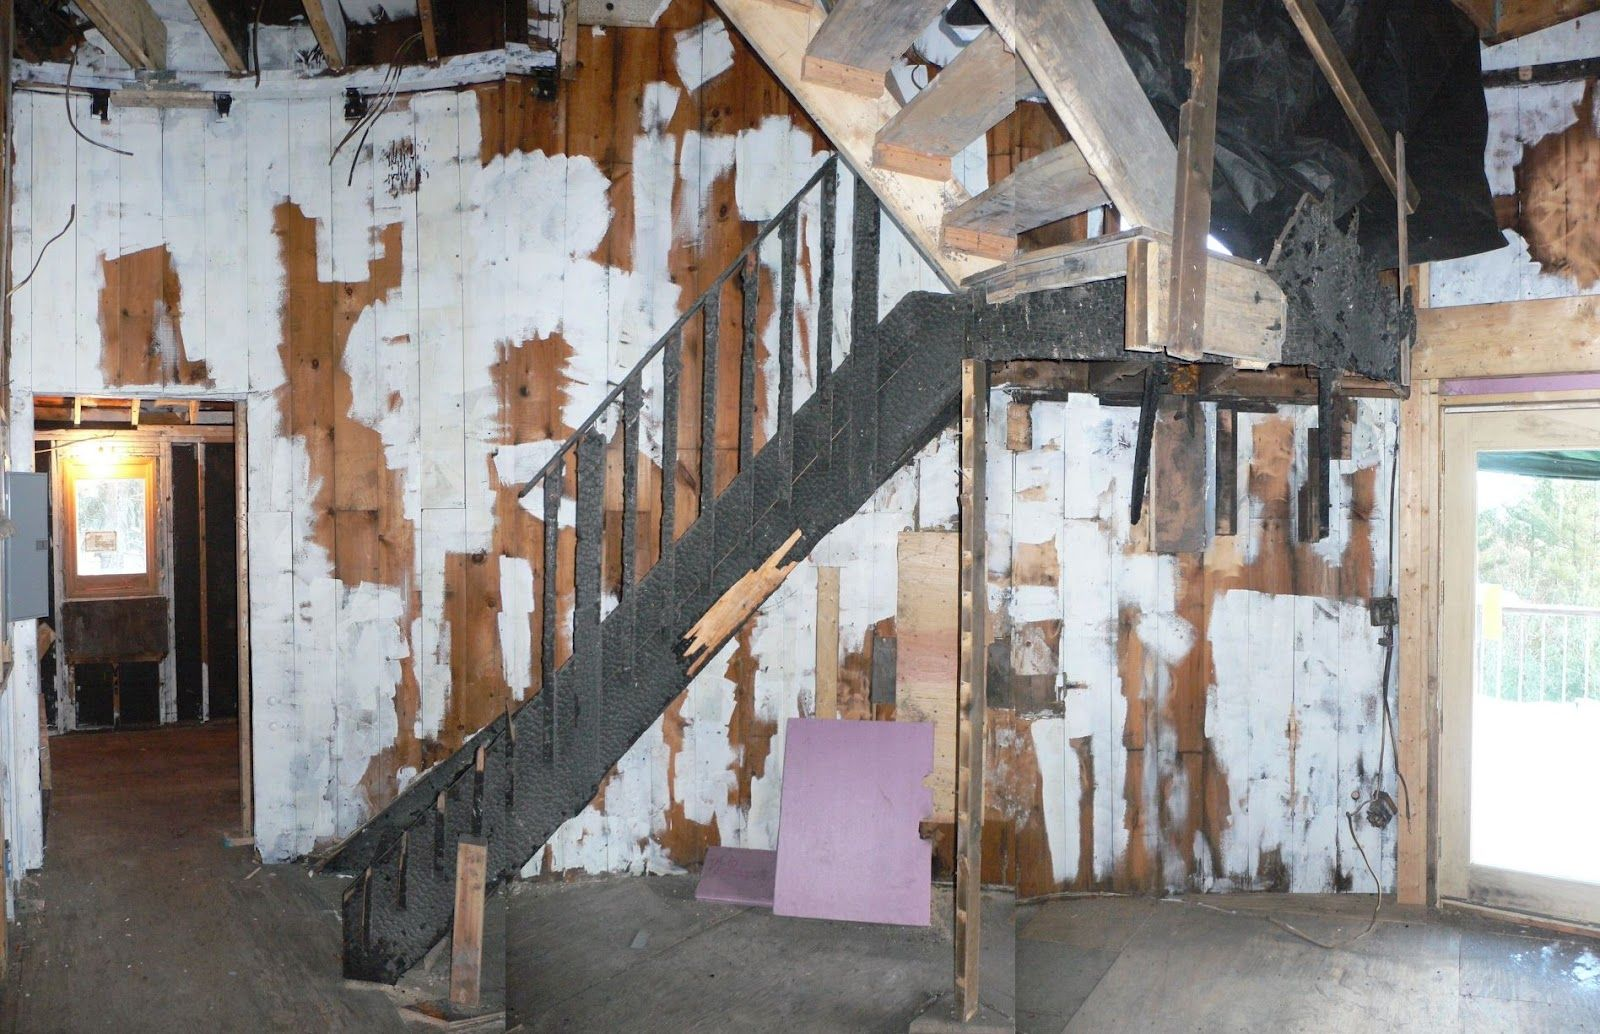 Stair Case In Condemned Building Staircase Eerie Abandoned Places